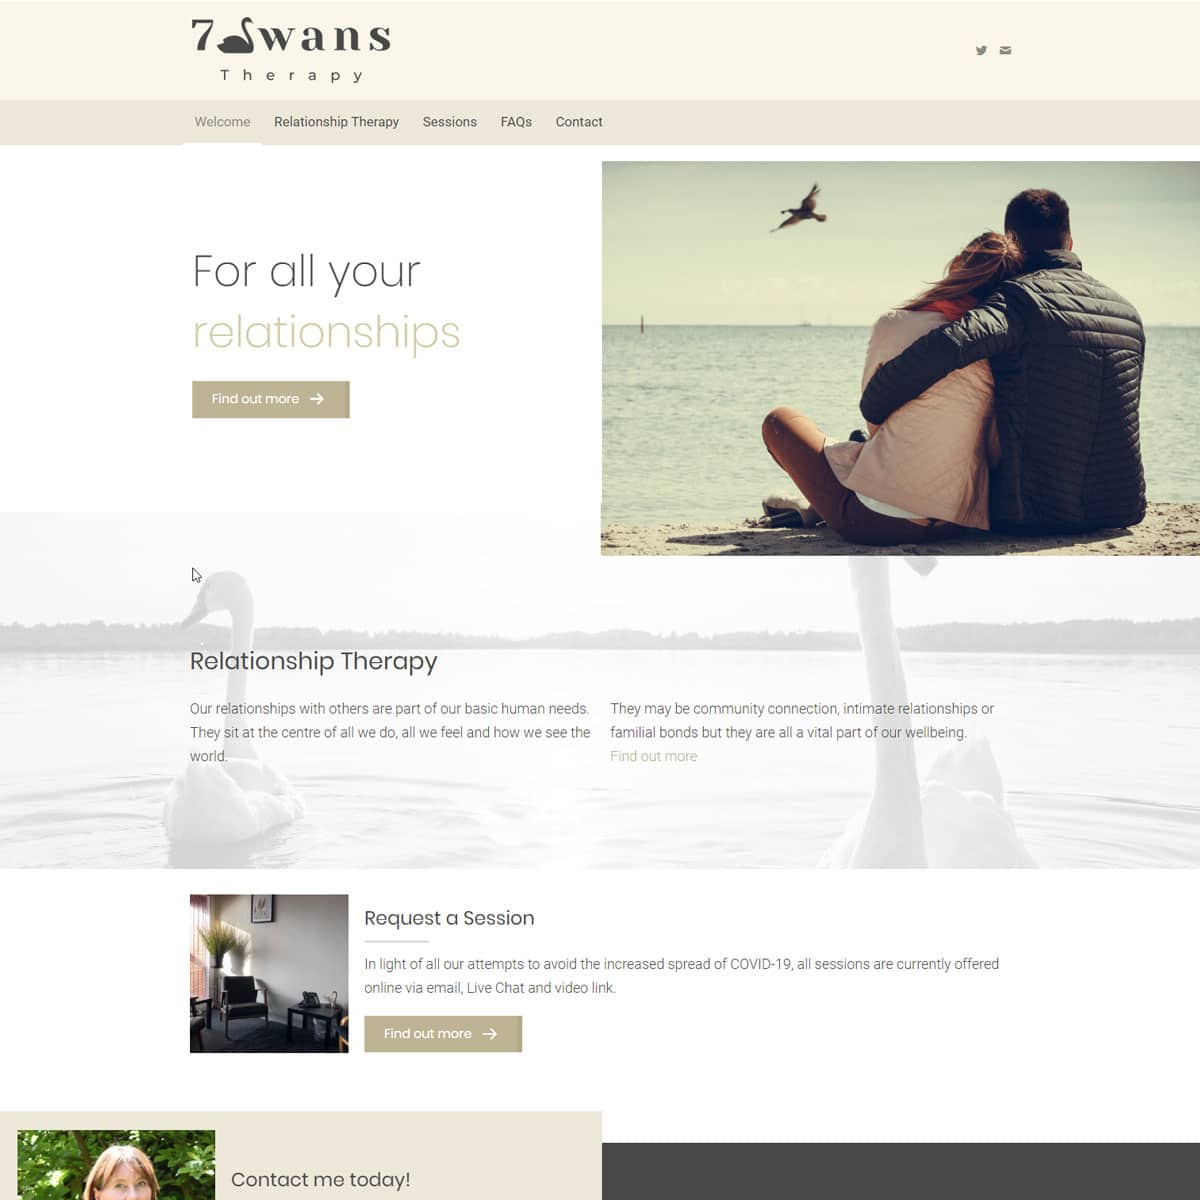 7swanstherapy